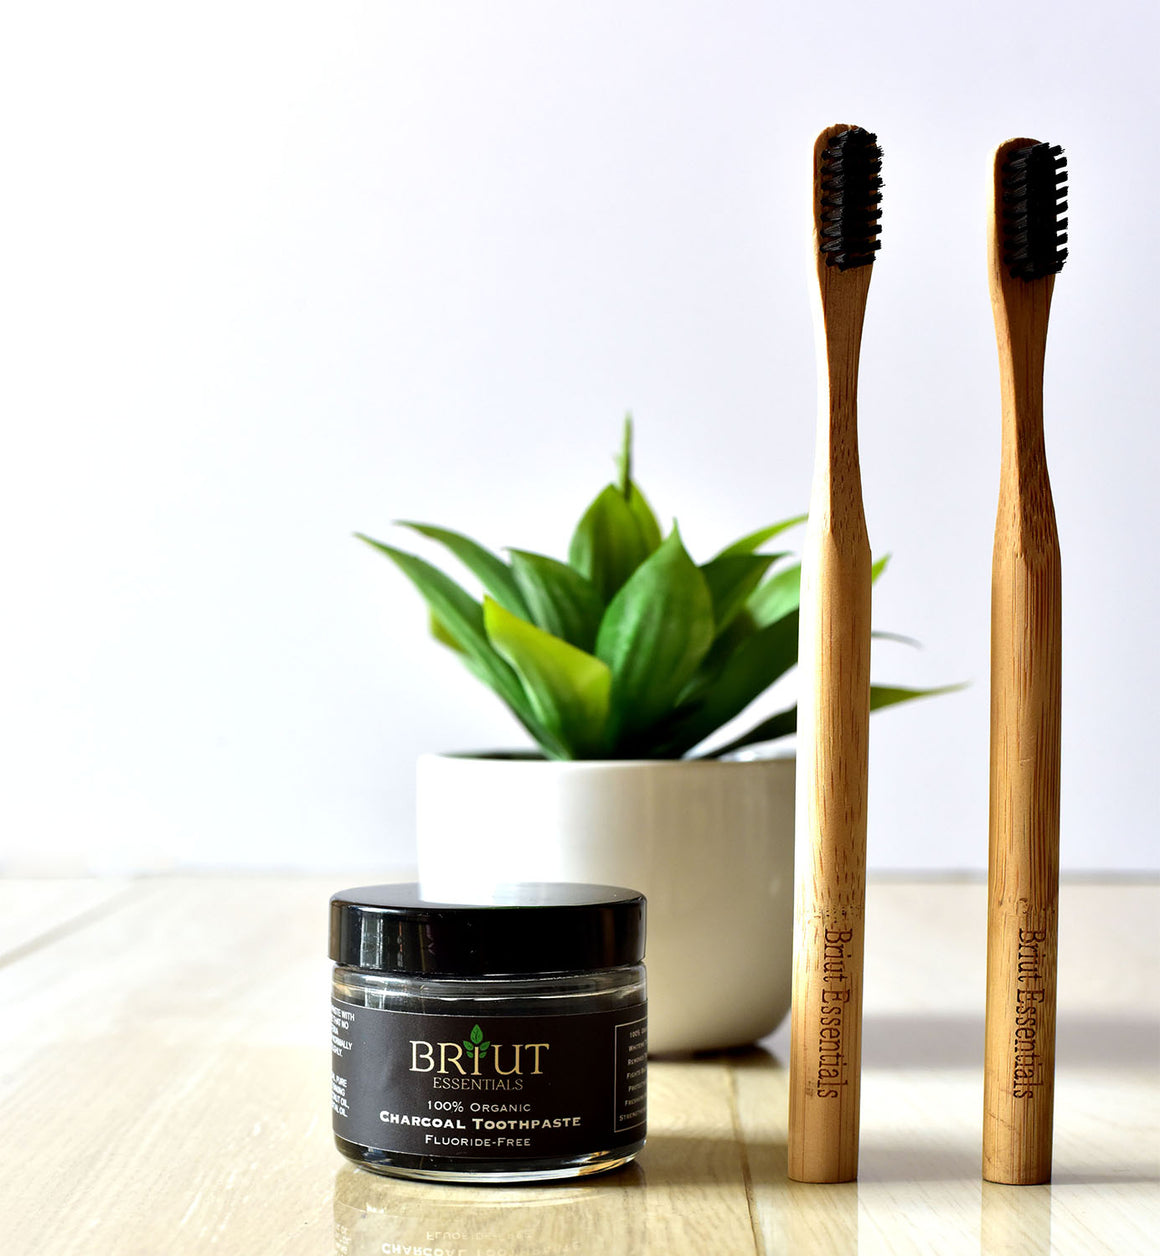 Charcoal Toothpaste (Not a Powder) + 2 Charcoal Biodegradable Toothbrushes